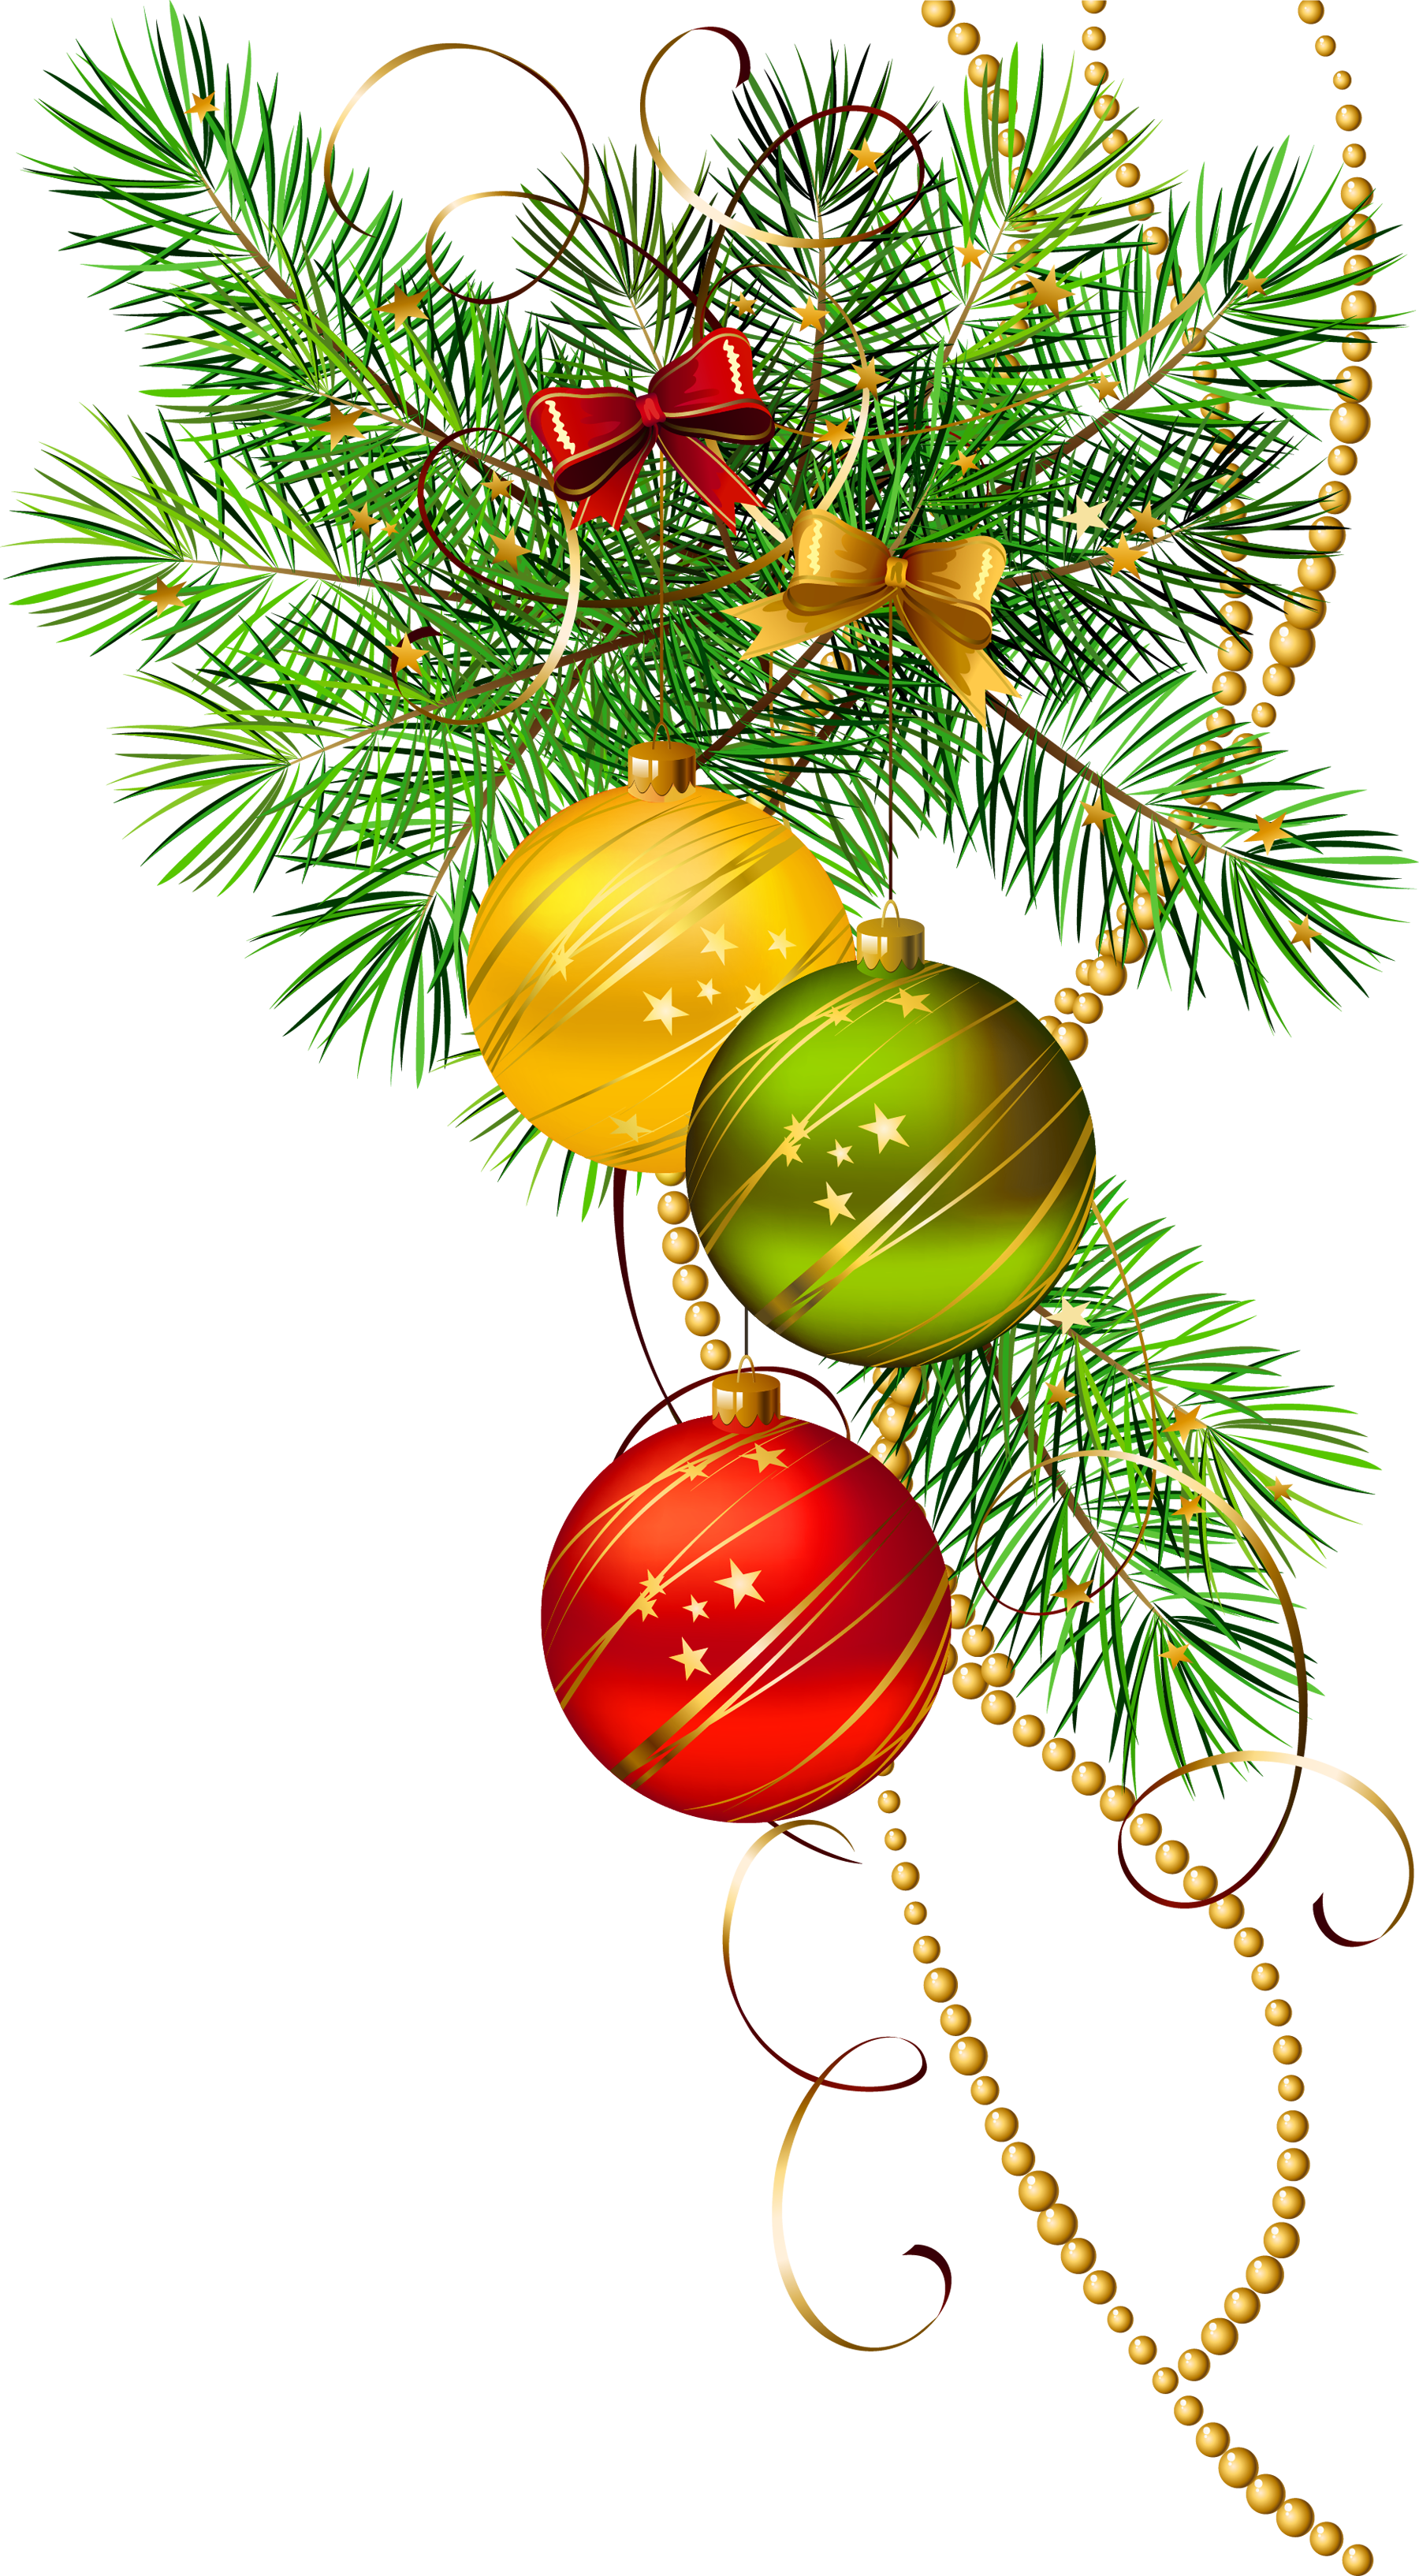 Christmas tree branch clipart clip freeuse download Three Christmas Balls with Pine Branch Clipart | Gallery ... clip freeuse download